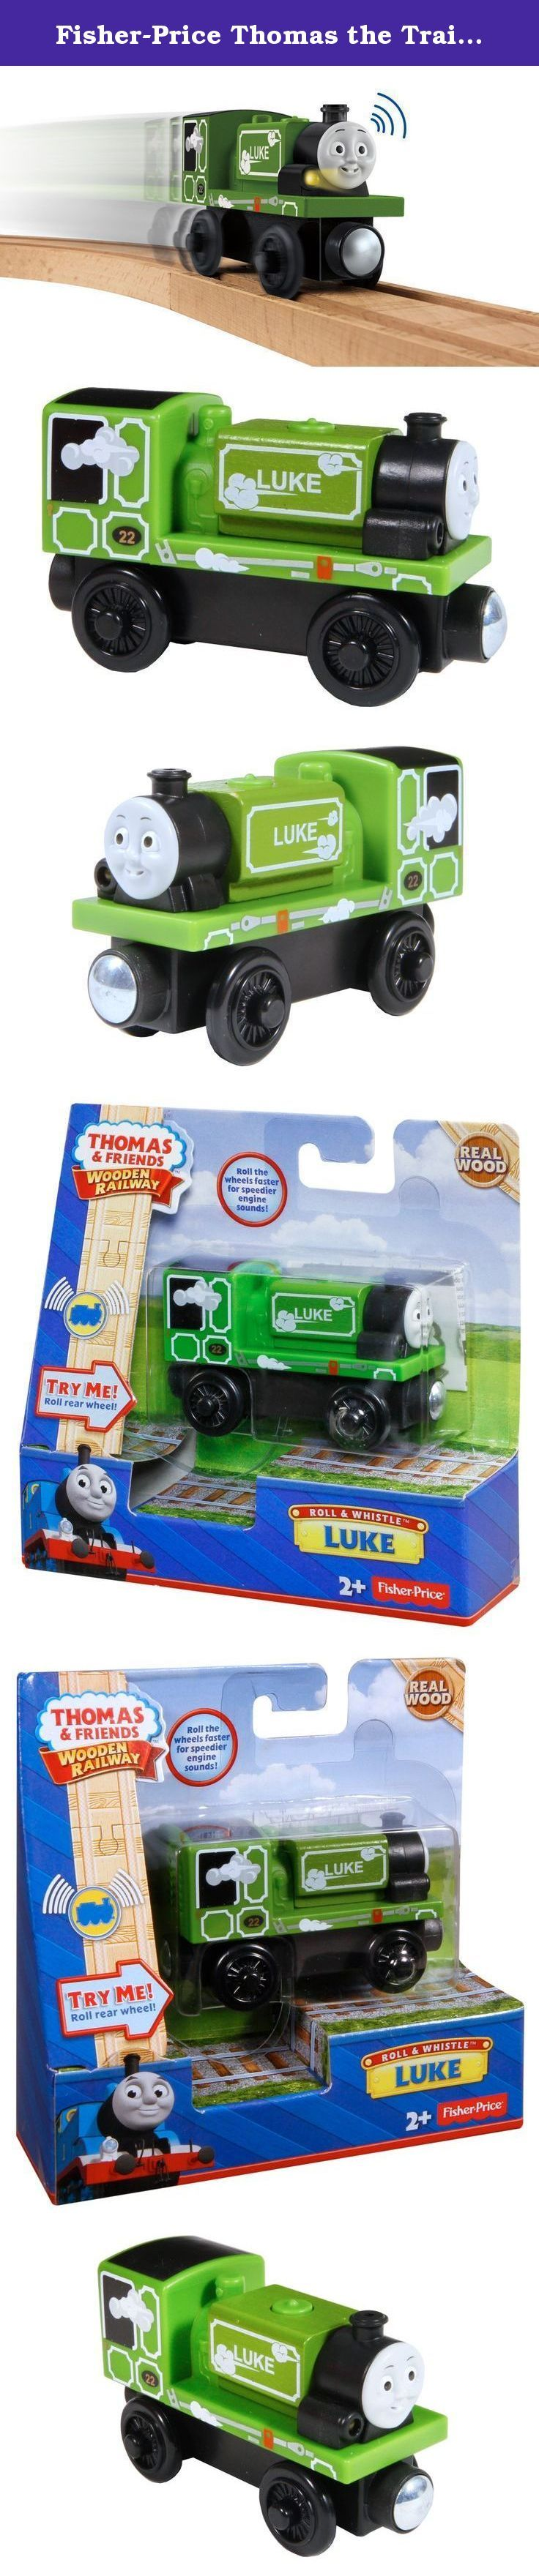 "Fisher-Price Thomas the Train Wooden Railway Roll & Whistle Luke. Luke whistles and features fun train sounds! Roll once to hear him chuff and whistle... roll the wheel faster for speedier engine sounds! Features a working headlight and easy-to-use magnet connector to connect Luke to other engines (sold separately and subject to availability)! Requires 1 ""AG13"" (LR44) battery (not included)."